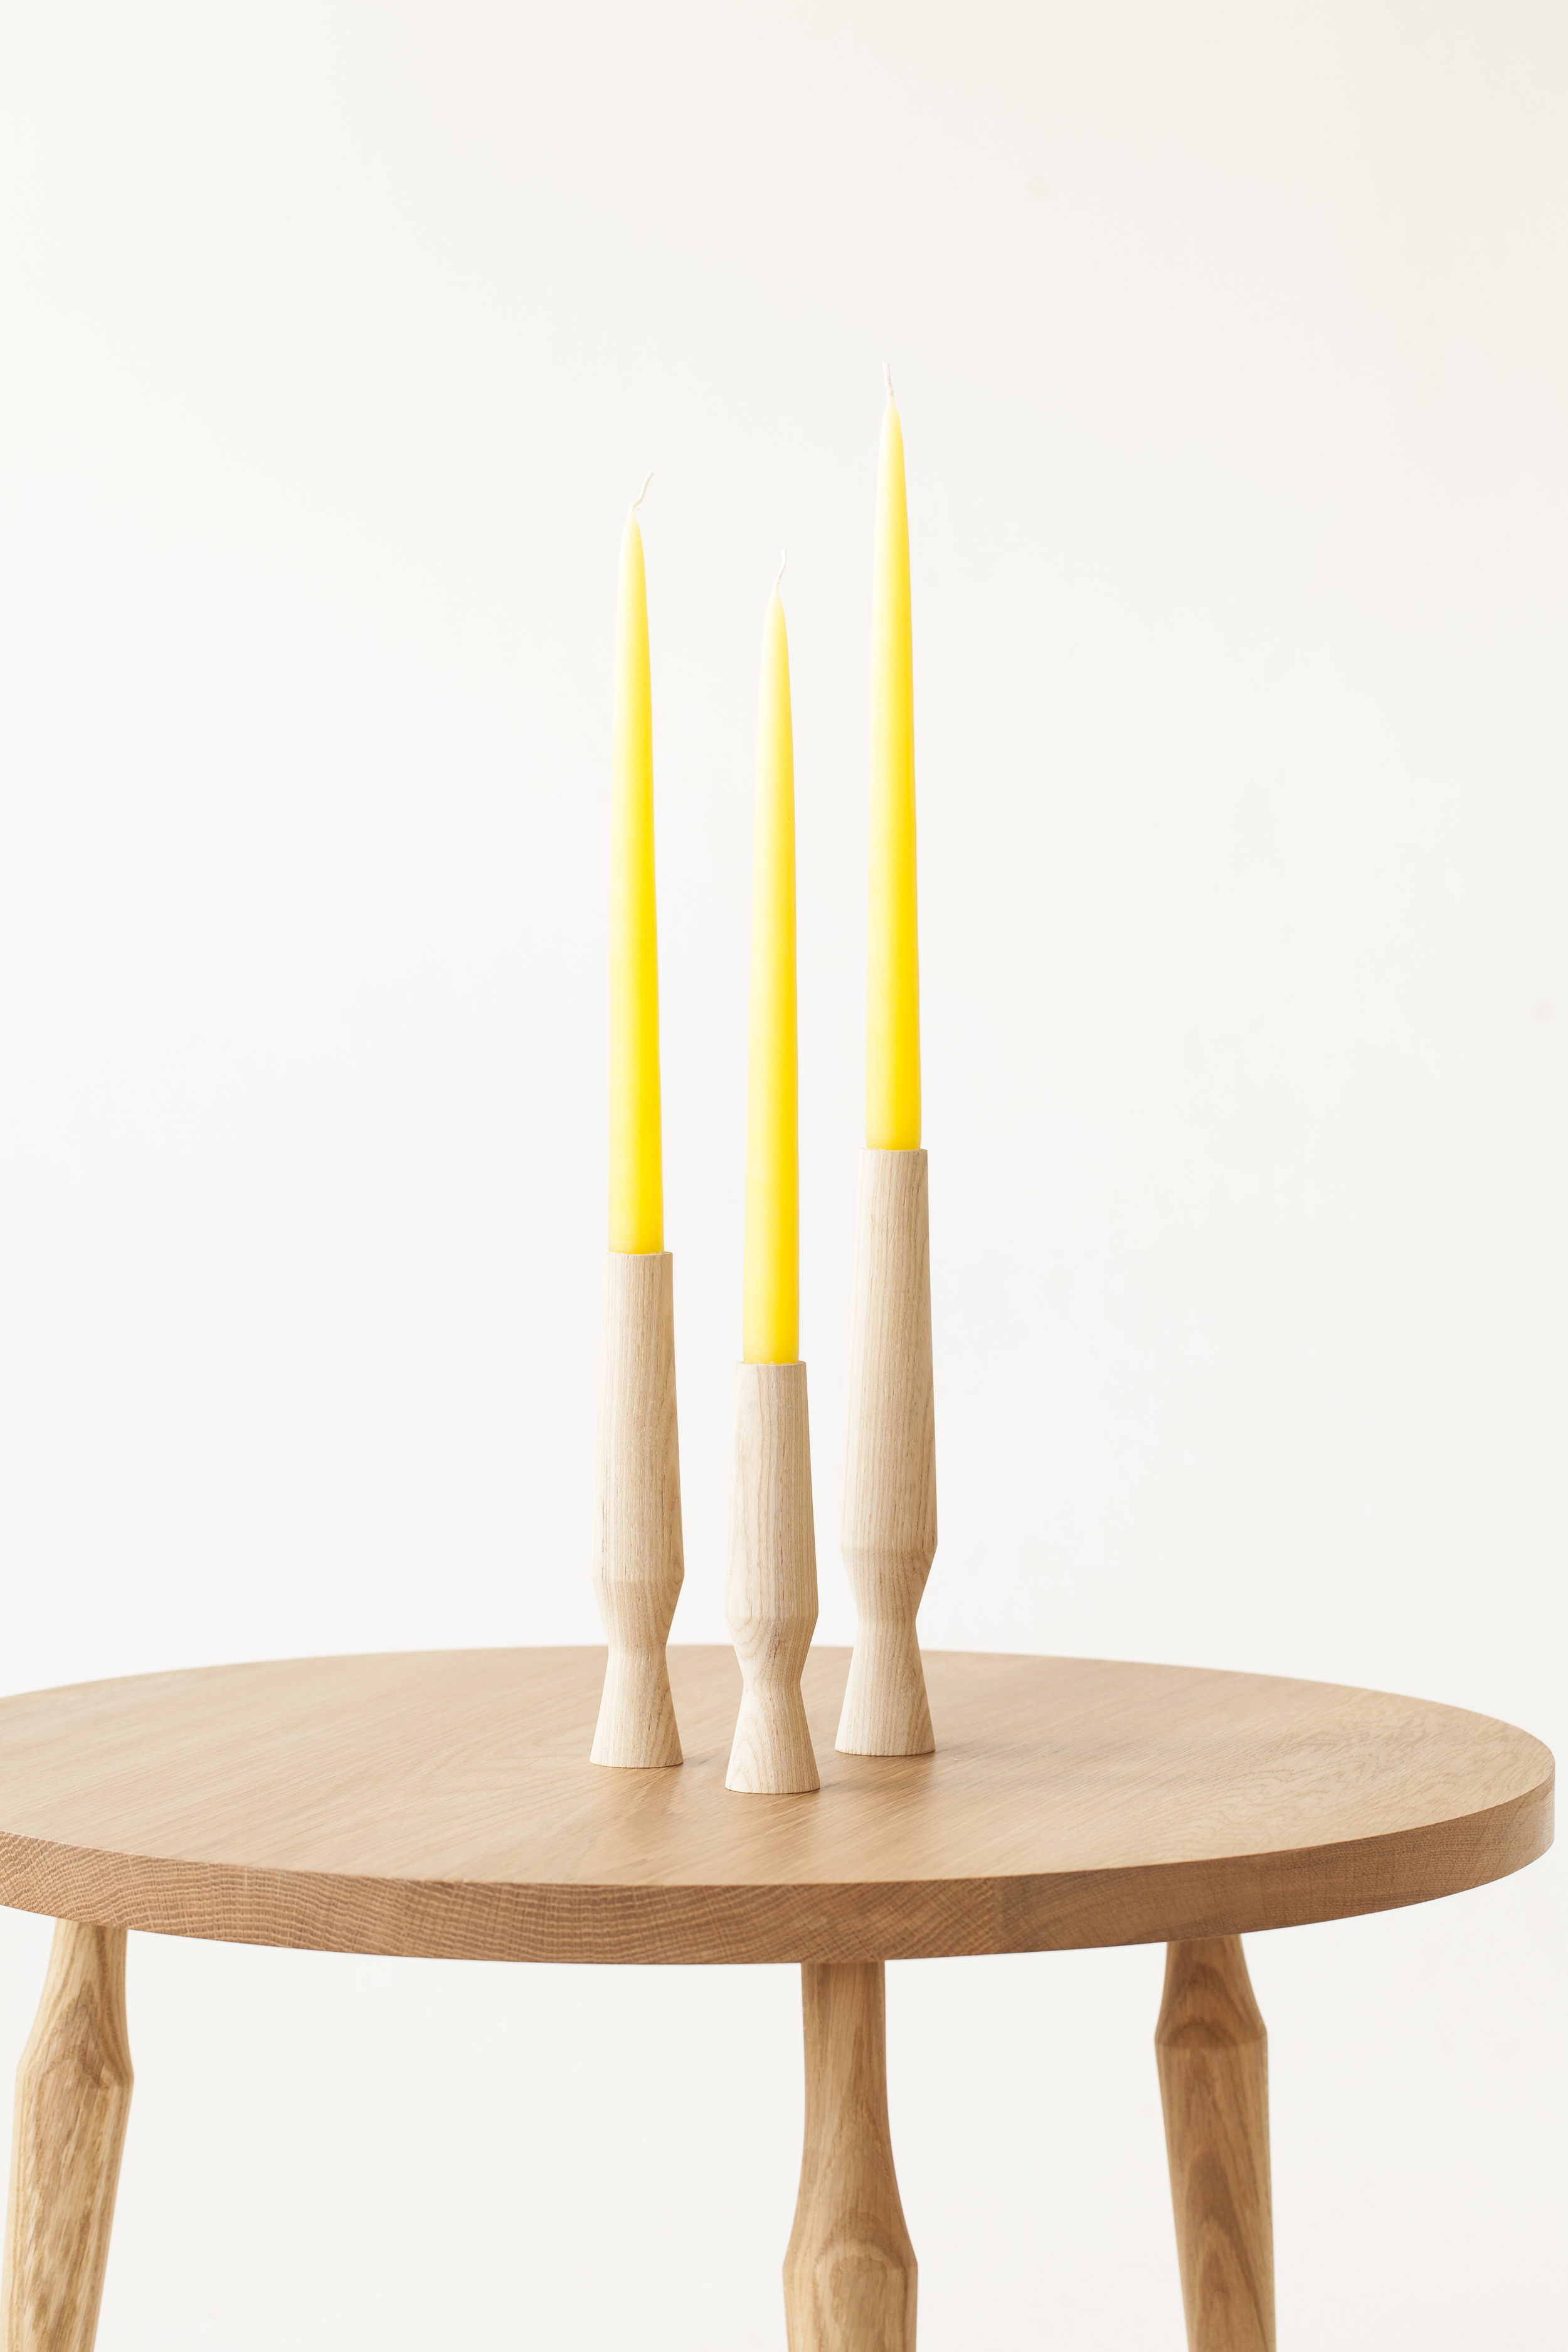 Louis candlesticks.